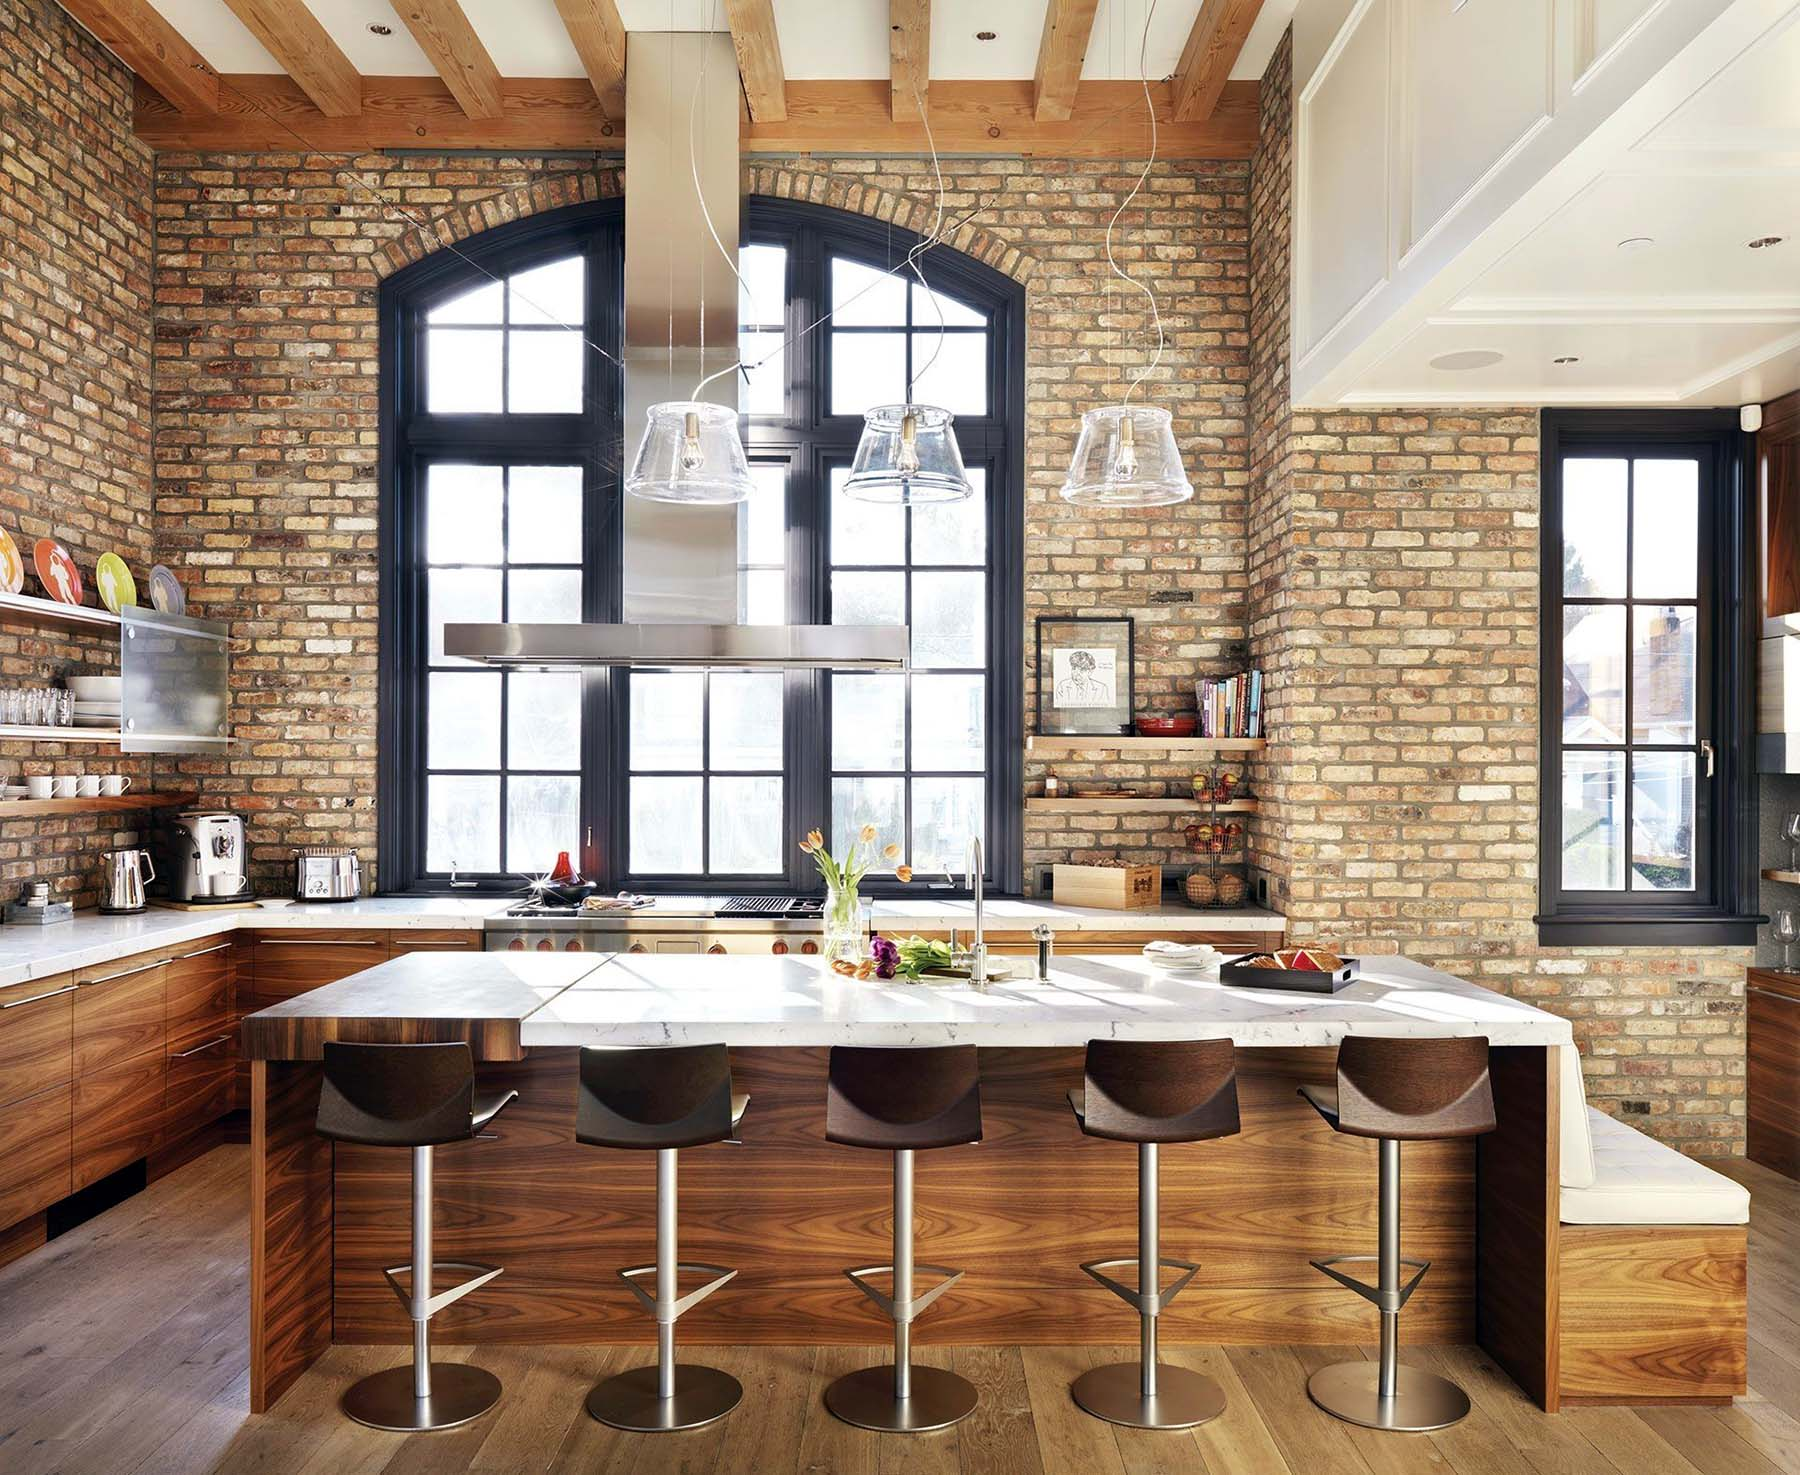 Beautiful contemporary kitchen design with cathedral ceilings, exposed wood beams, real wood flat faced cabinets, and red brick walls.